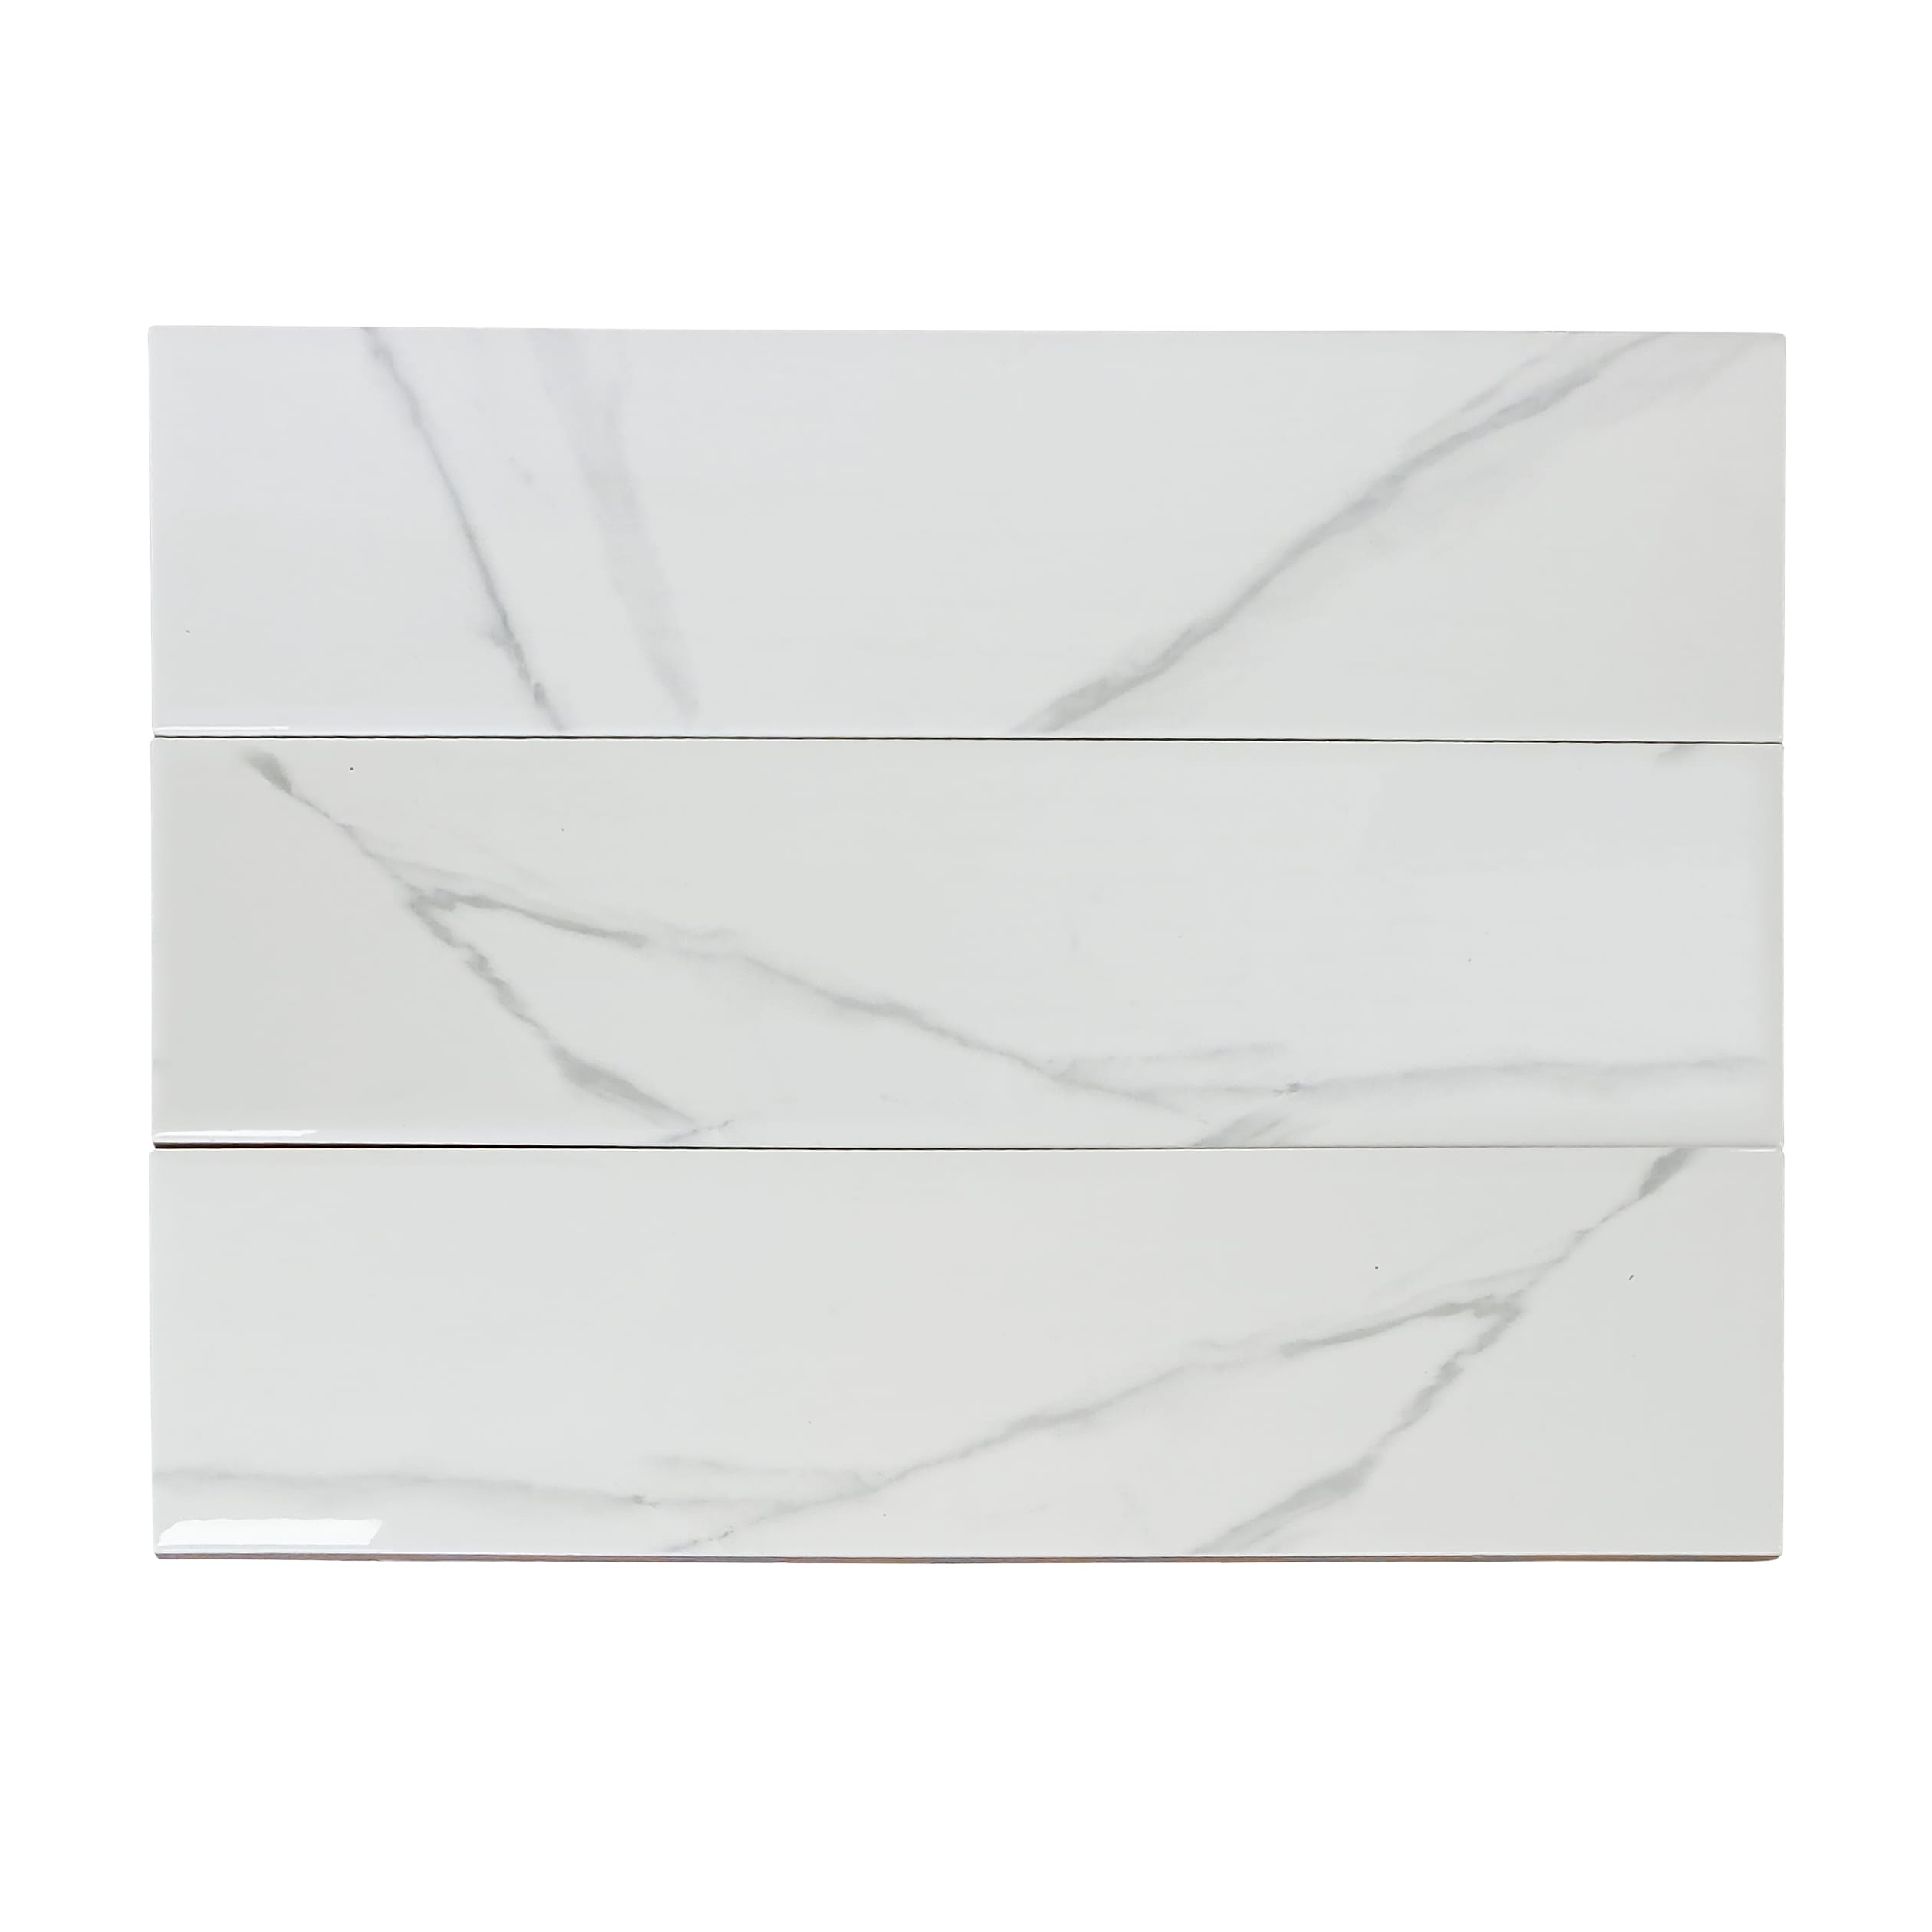 4×16 Enigma Glossy Tile_White_10.33sfct_3.49_2.29